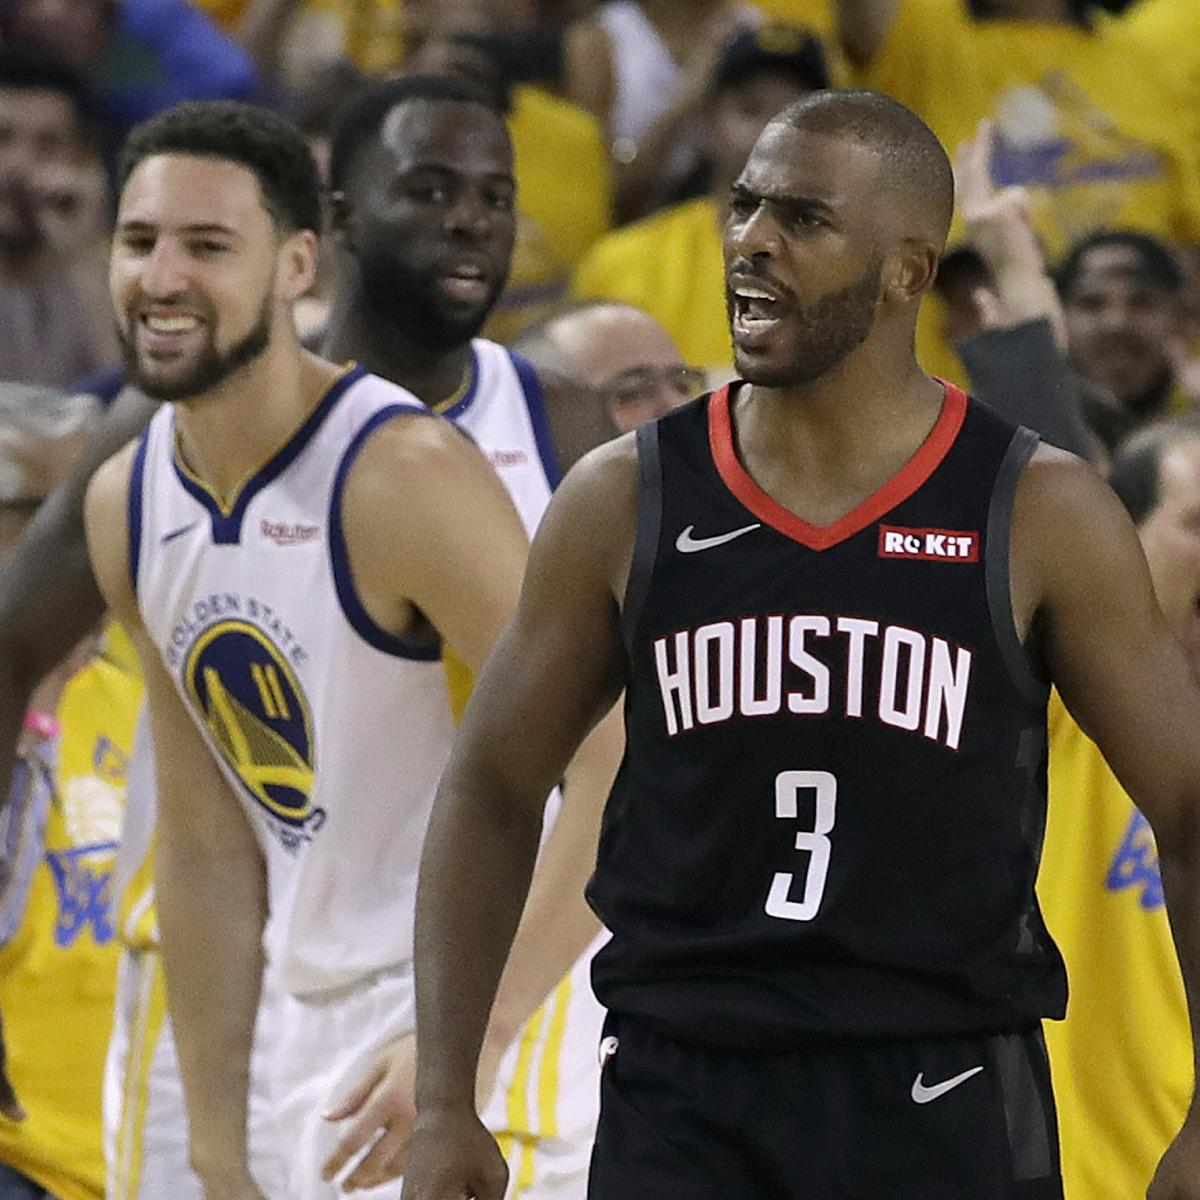 Golden State Warriors Vs Houston Rockets Live Stream Free: Video: Chris Paul Ejected After Wild Sequence At The End